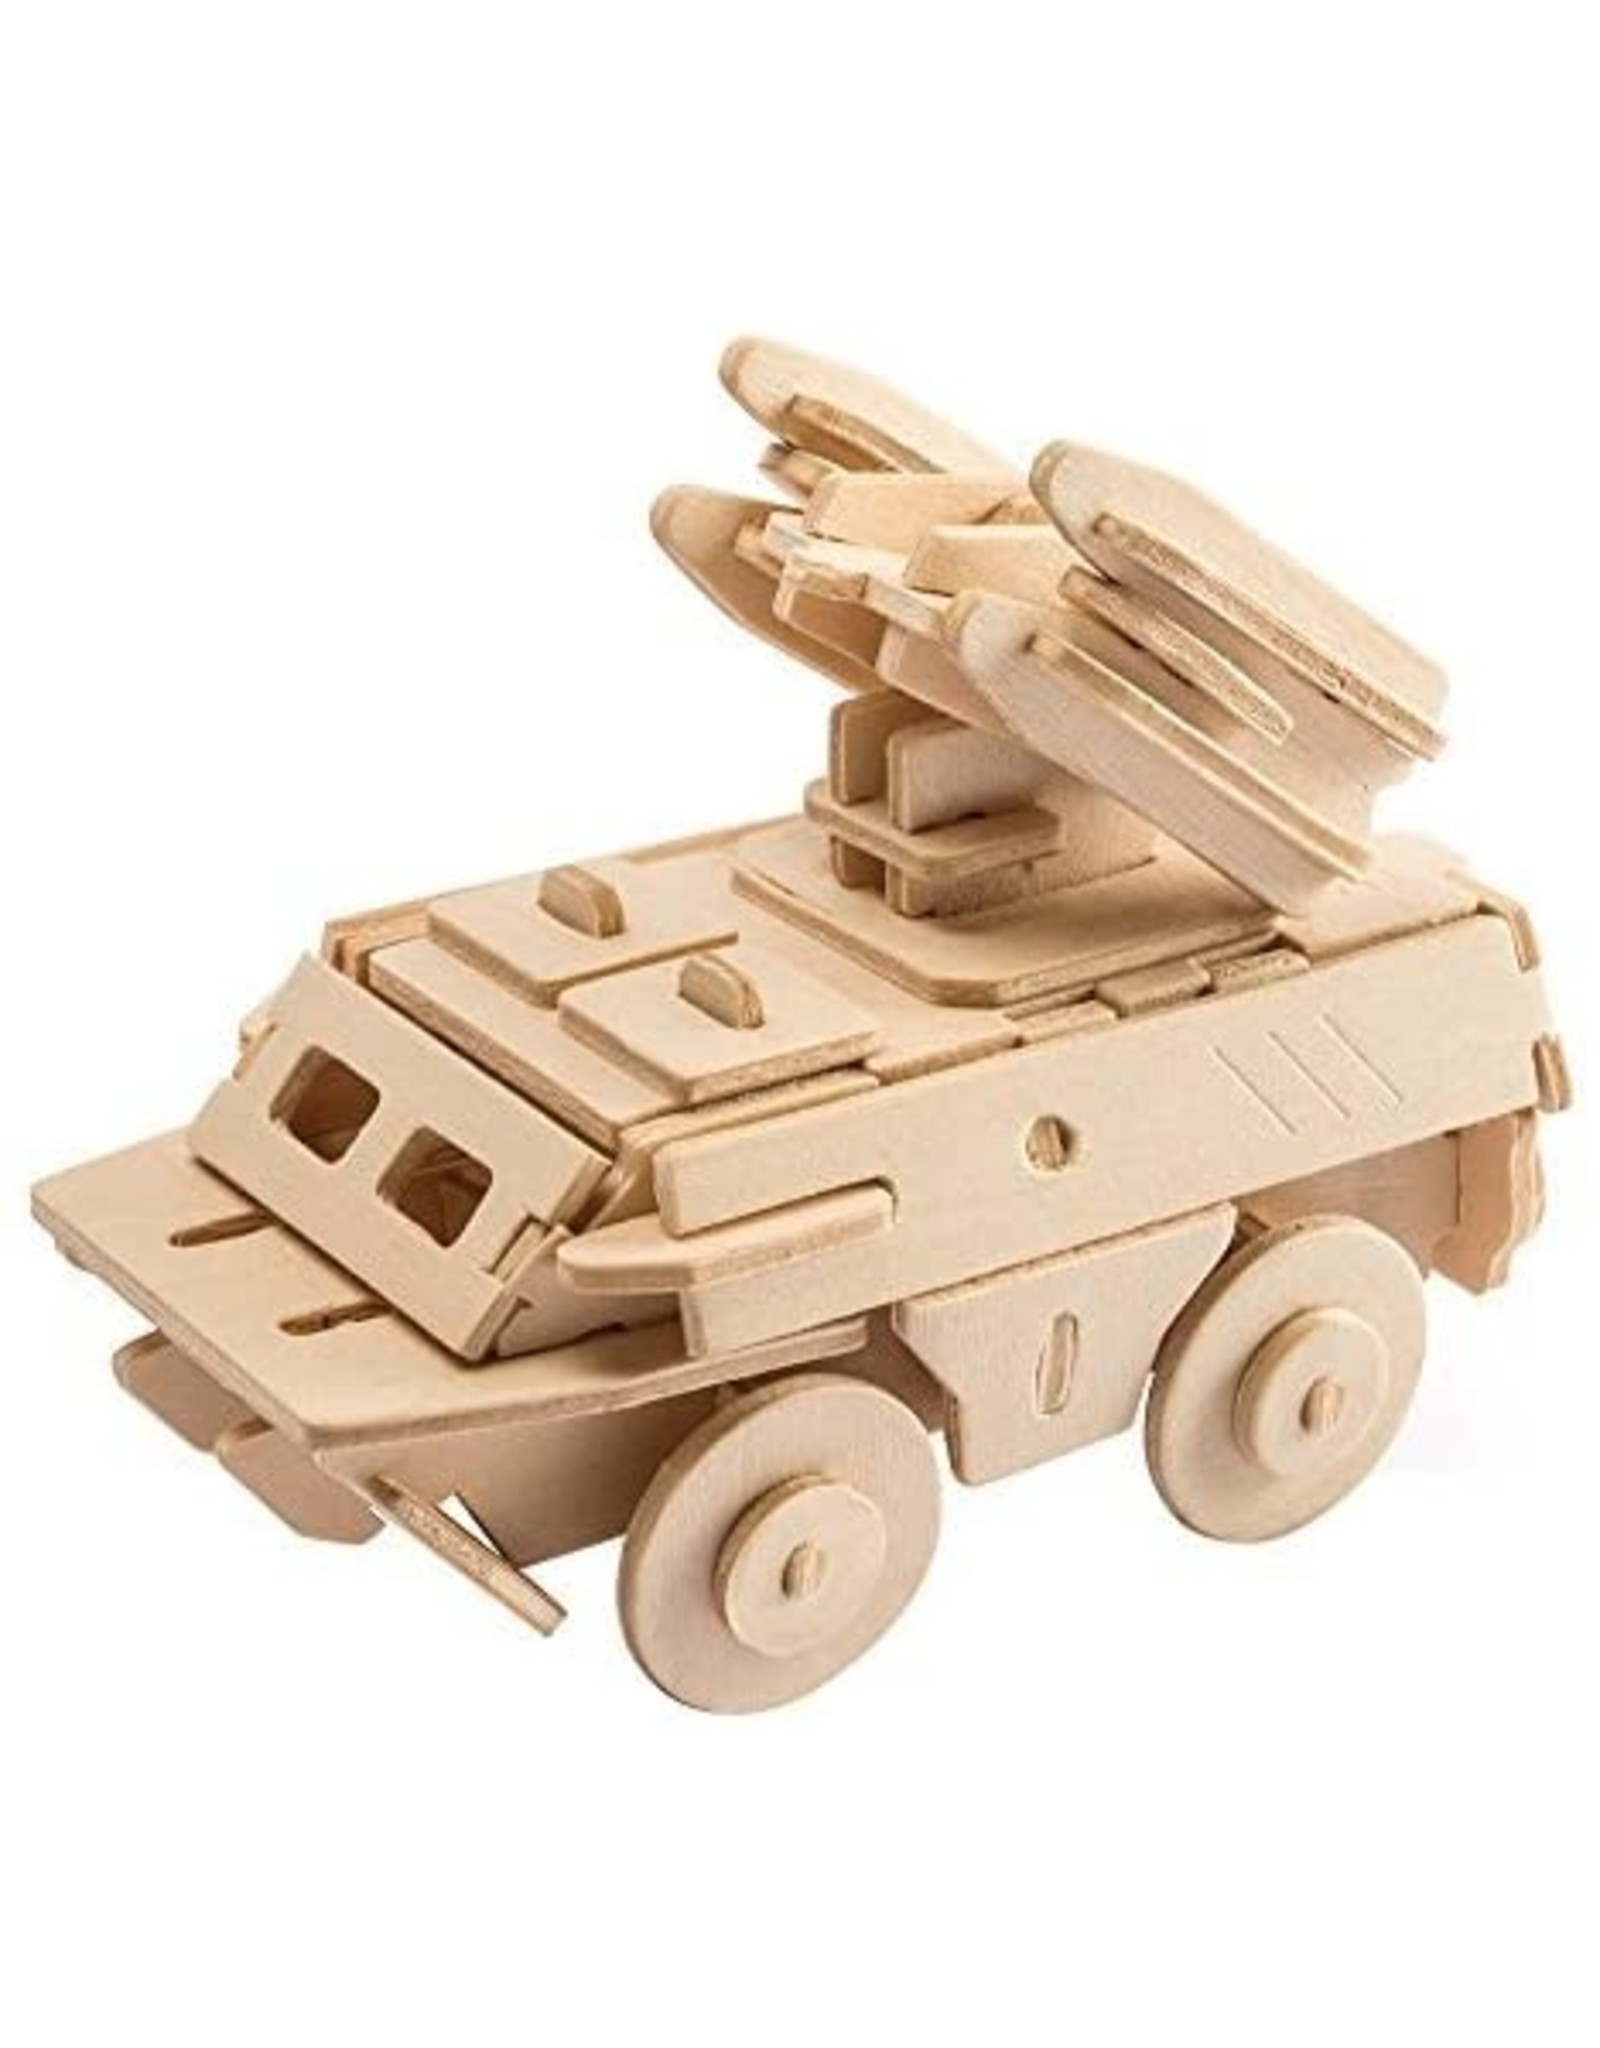 Hands Craft 3D Wooden Puzzle - Anti-Aircraft Missile